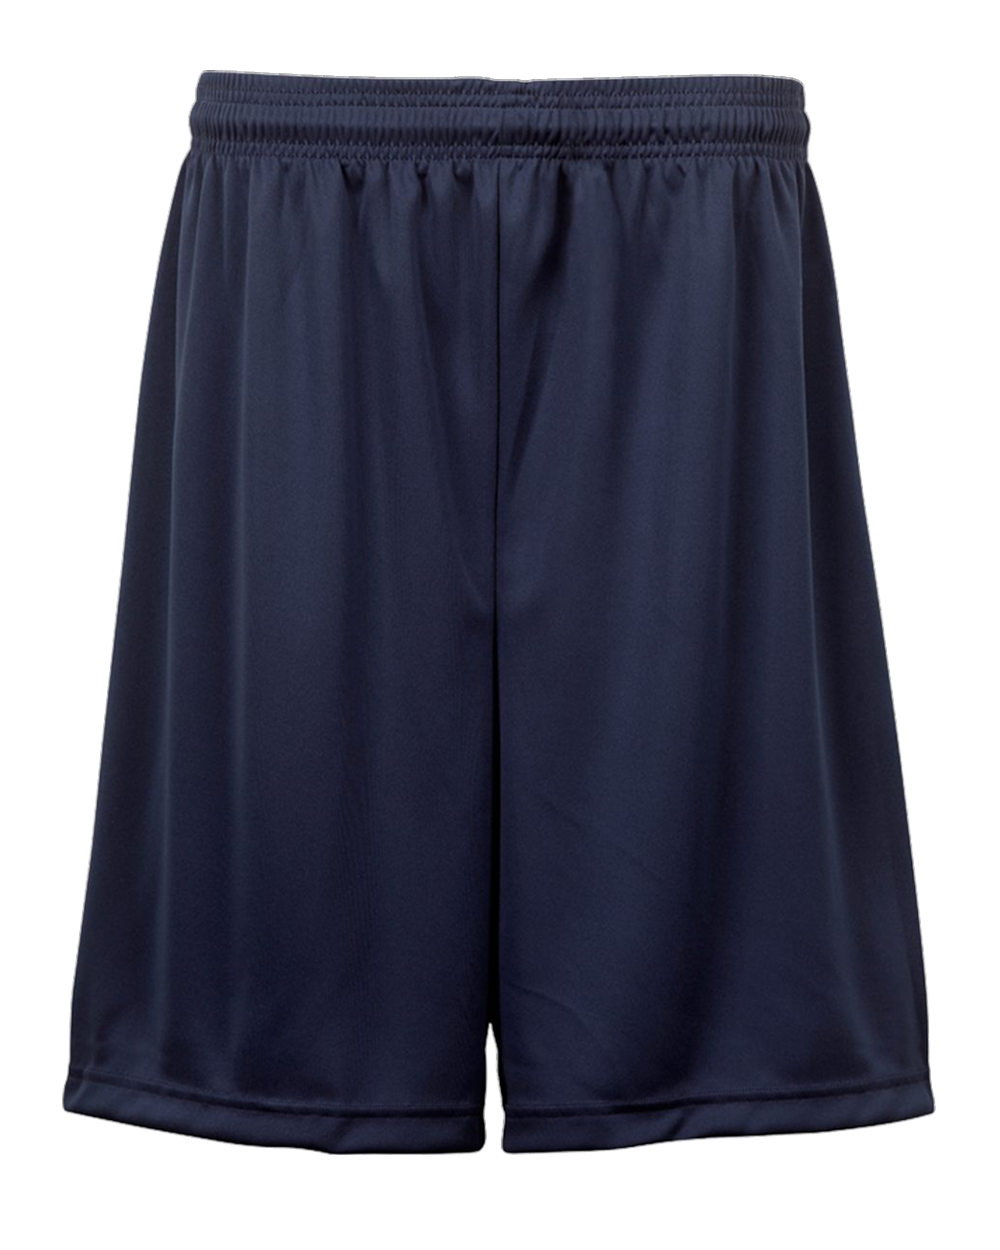 C2 Yth Performance Short - Navy